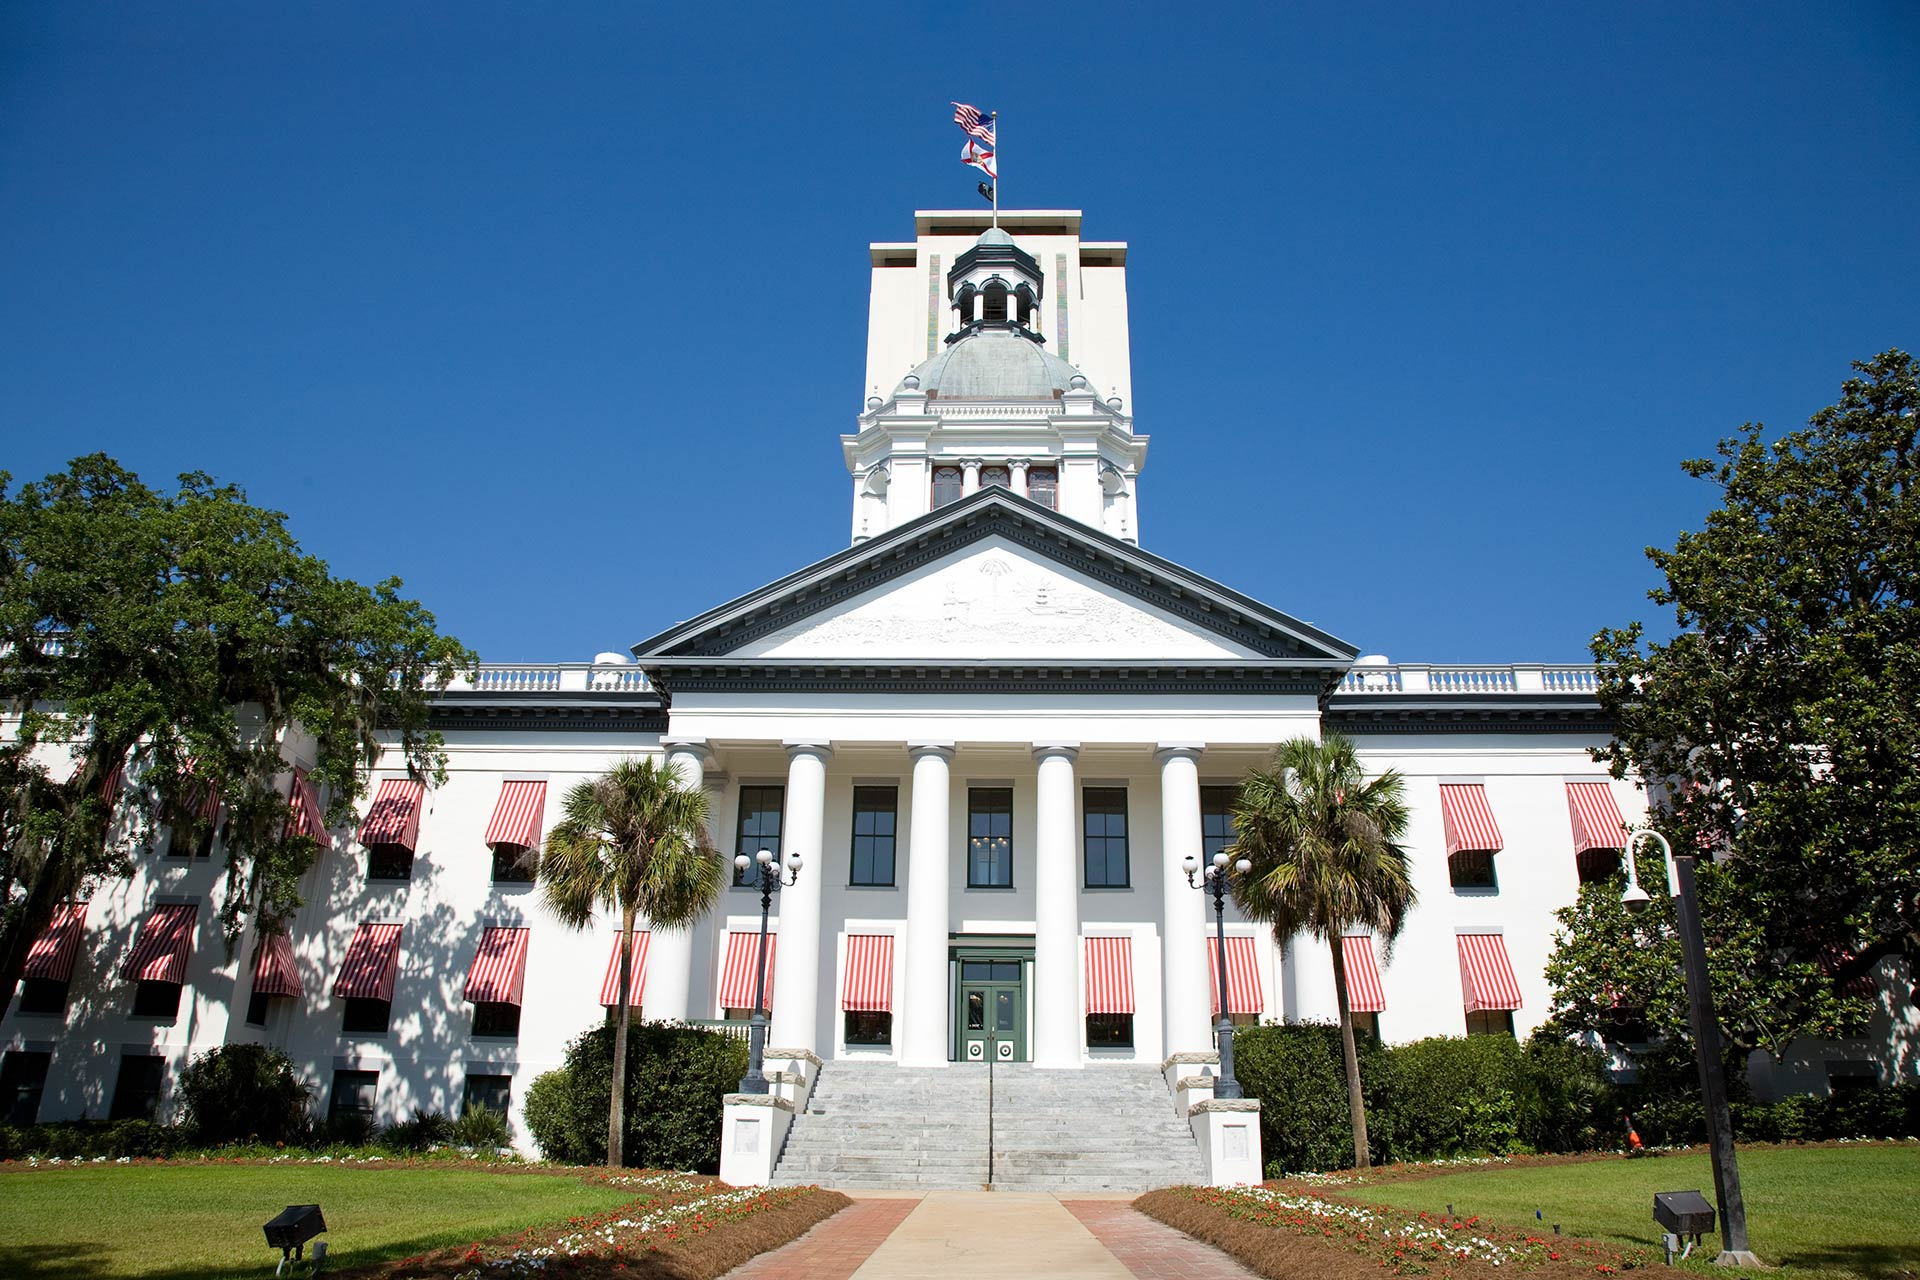 Florida municipal lien search, including code and zoning violations, failure to pay utilities or secure permits, special assessments, unpaid taxes, and more.